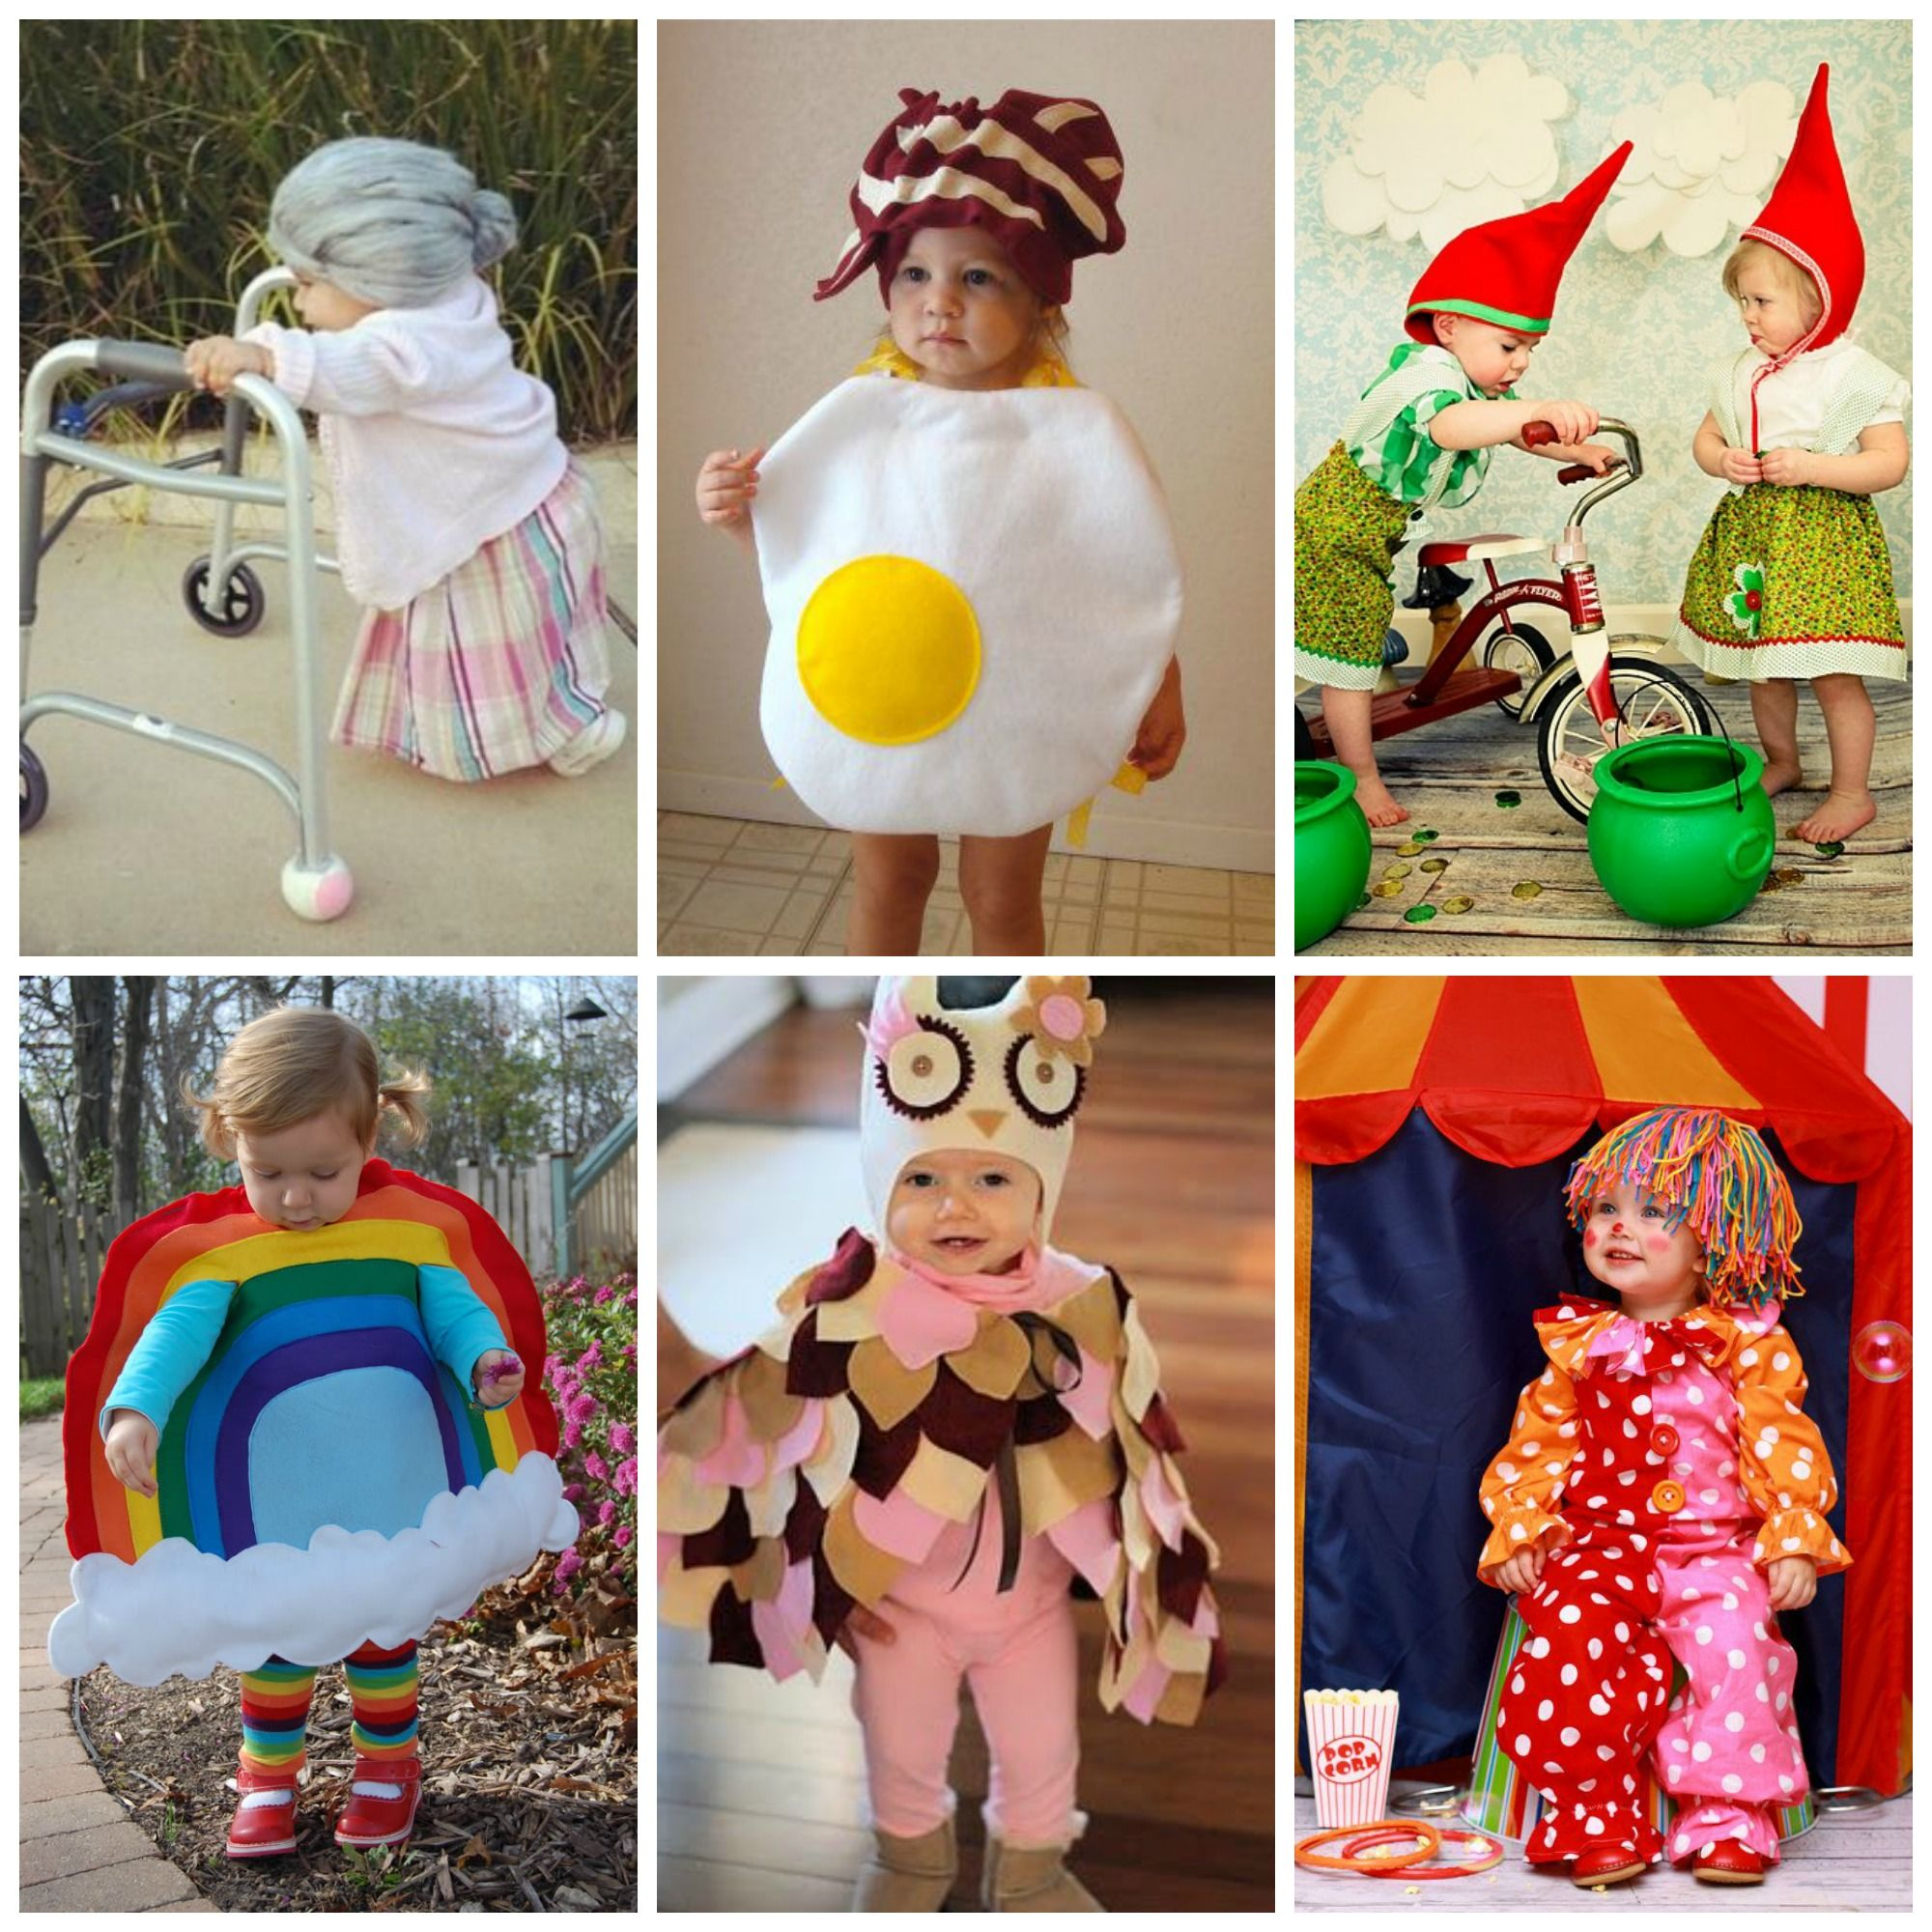 disfraces originales para niños disfraces Pinterest